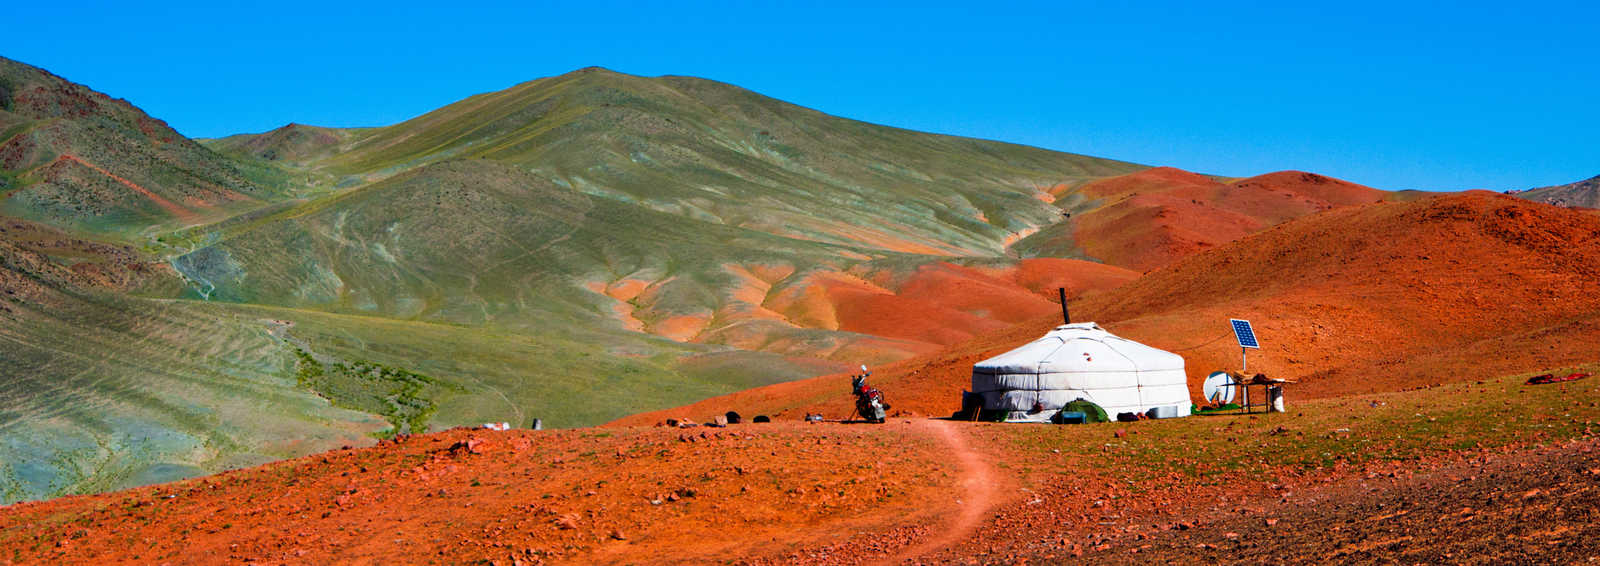 Mongolian ger in the mountains, Mongolia